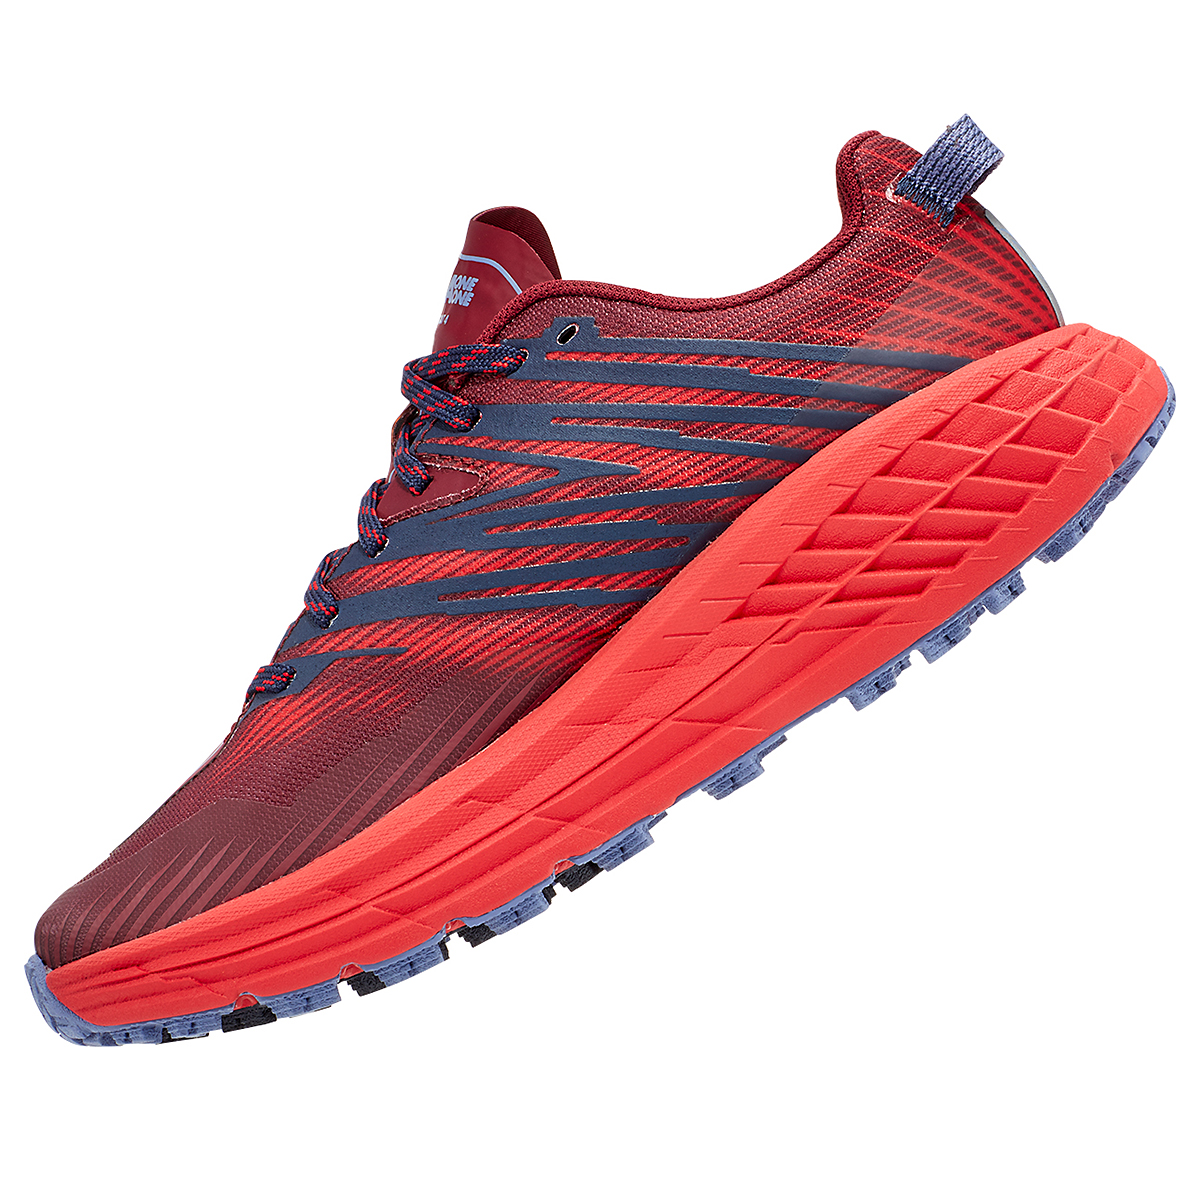 Women's Hoka One One Speedgoat 4 Trail Running Shoe - Color: Cordovan/High Risk Red - Size: 5 - Width: Regular, Cordovan/High Risk Red, large, image 6